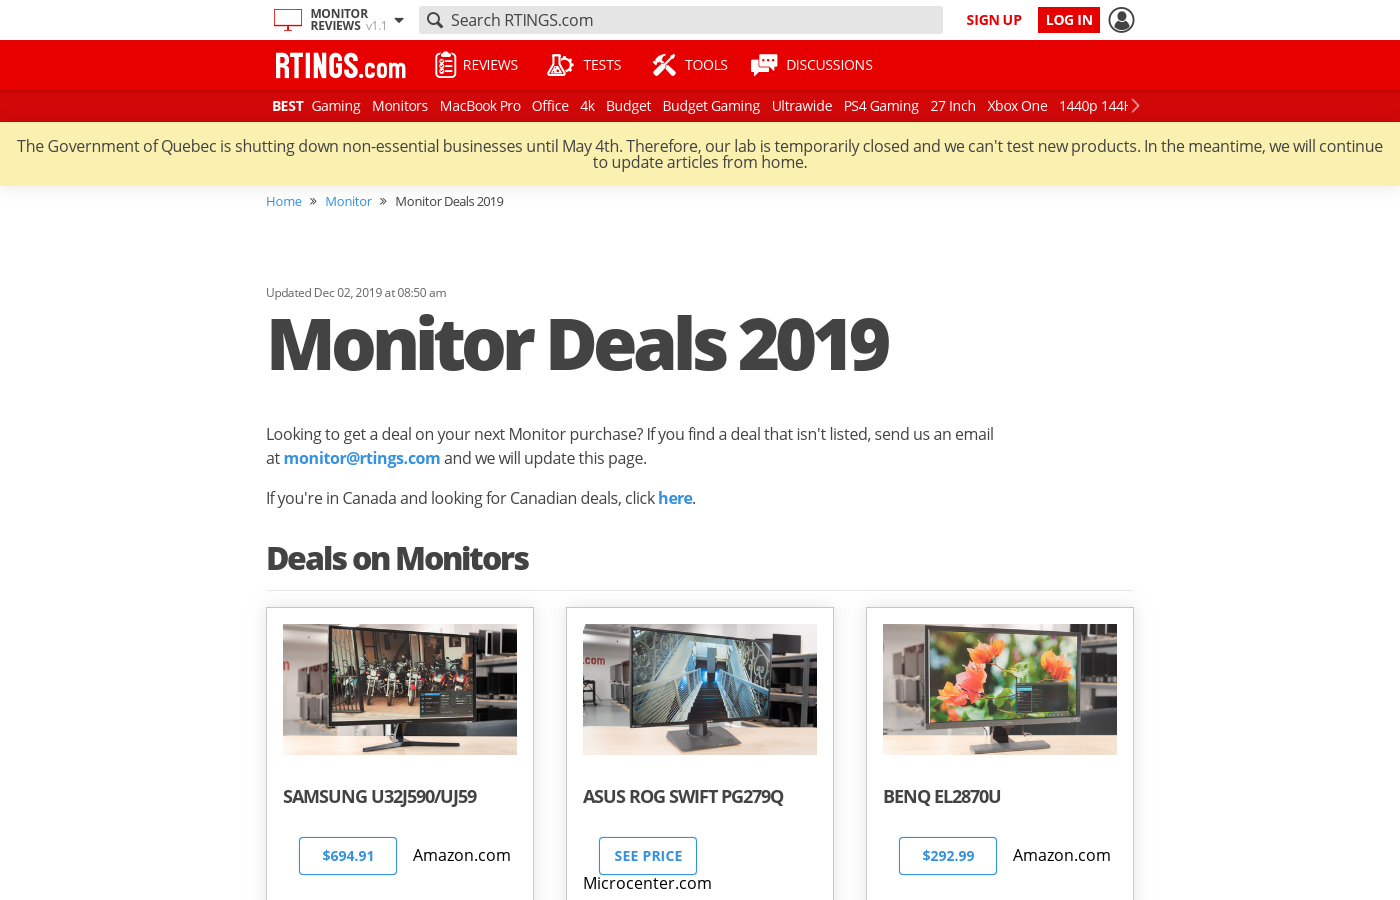 Prime Day 2019 - Monitor Deals